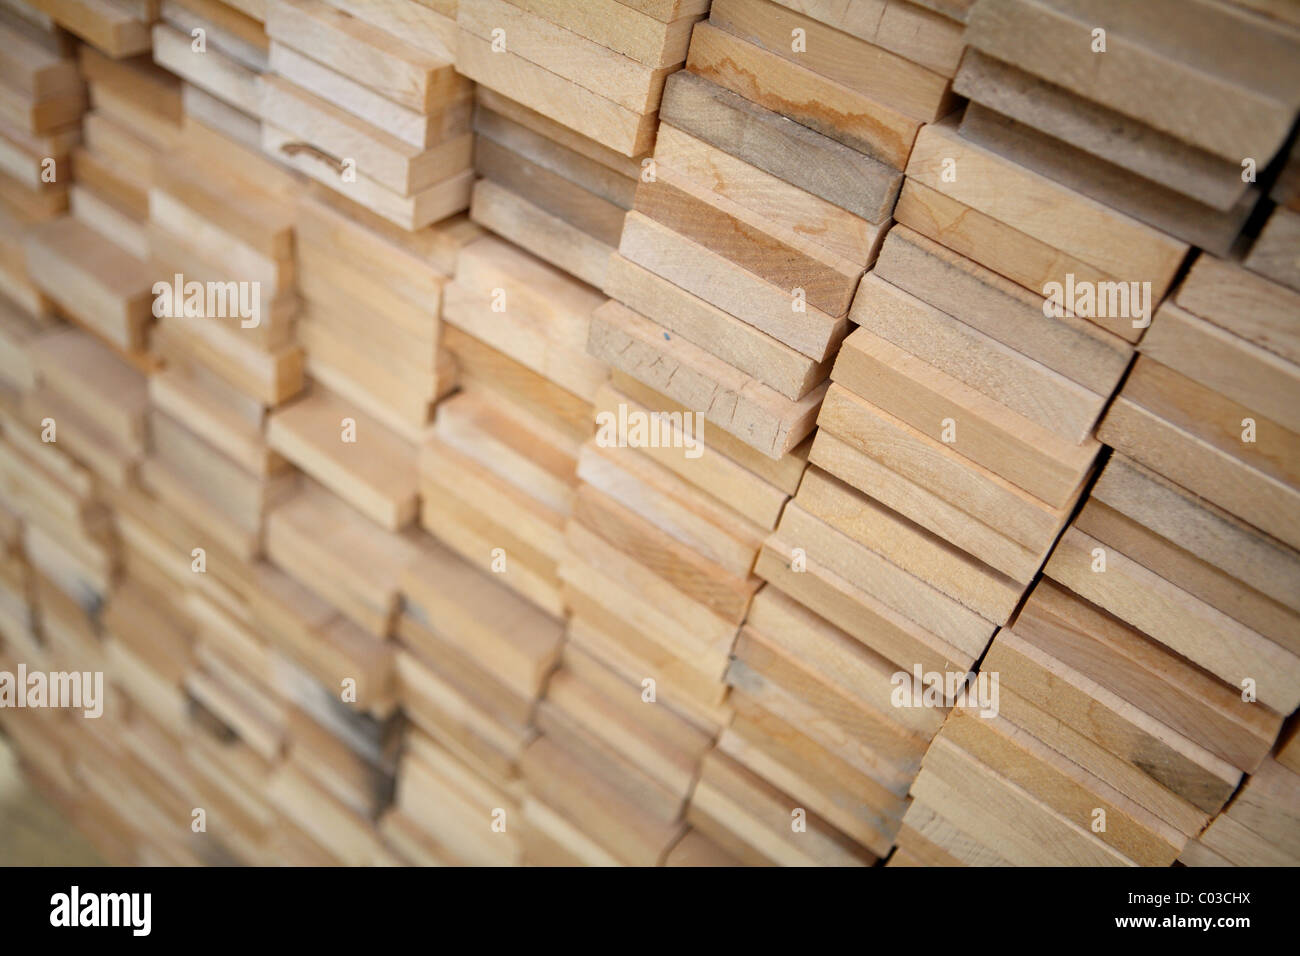 Planks of wood stacked - Stock Image